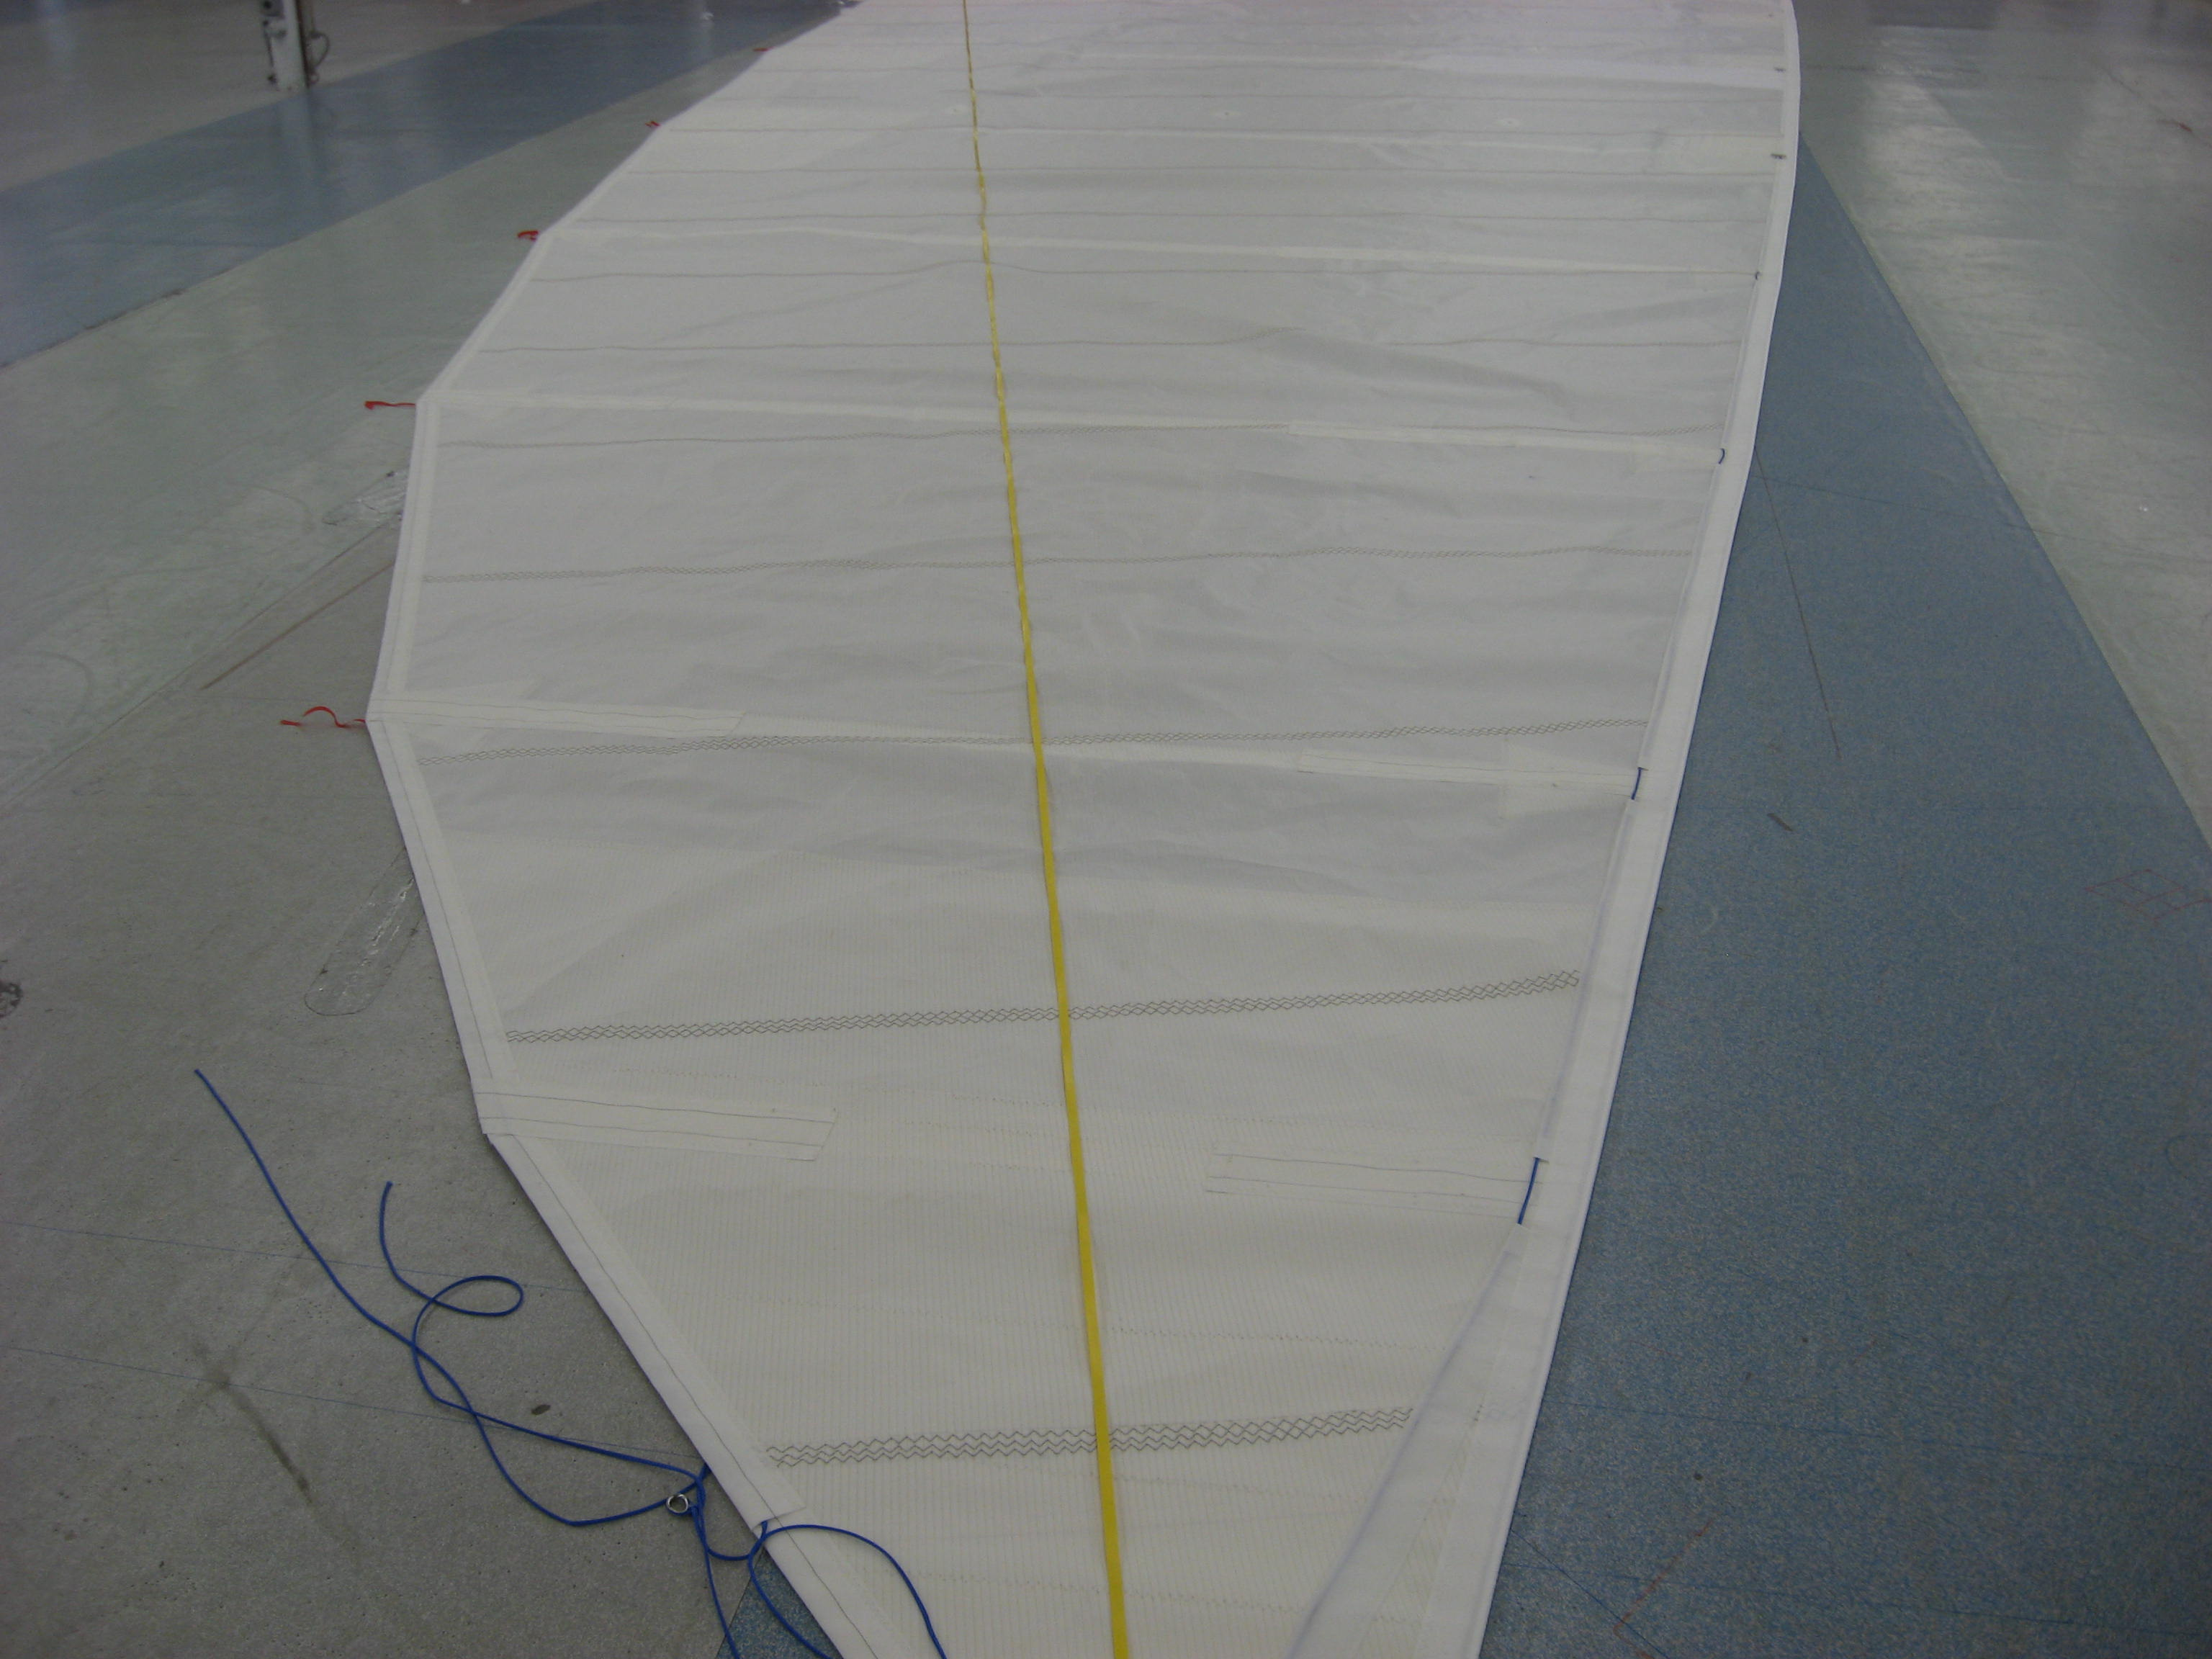 The yellow line leading from the head, at the bottom of the image, to the clew at the top, is the straight line leech. All the sail to the image left of this line is roach. This of course requires considerable detail (read cost) in making sure the sail will be robust enough for hard offshore work typical of Deer foot owners.